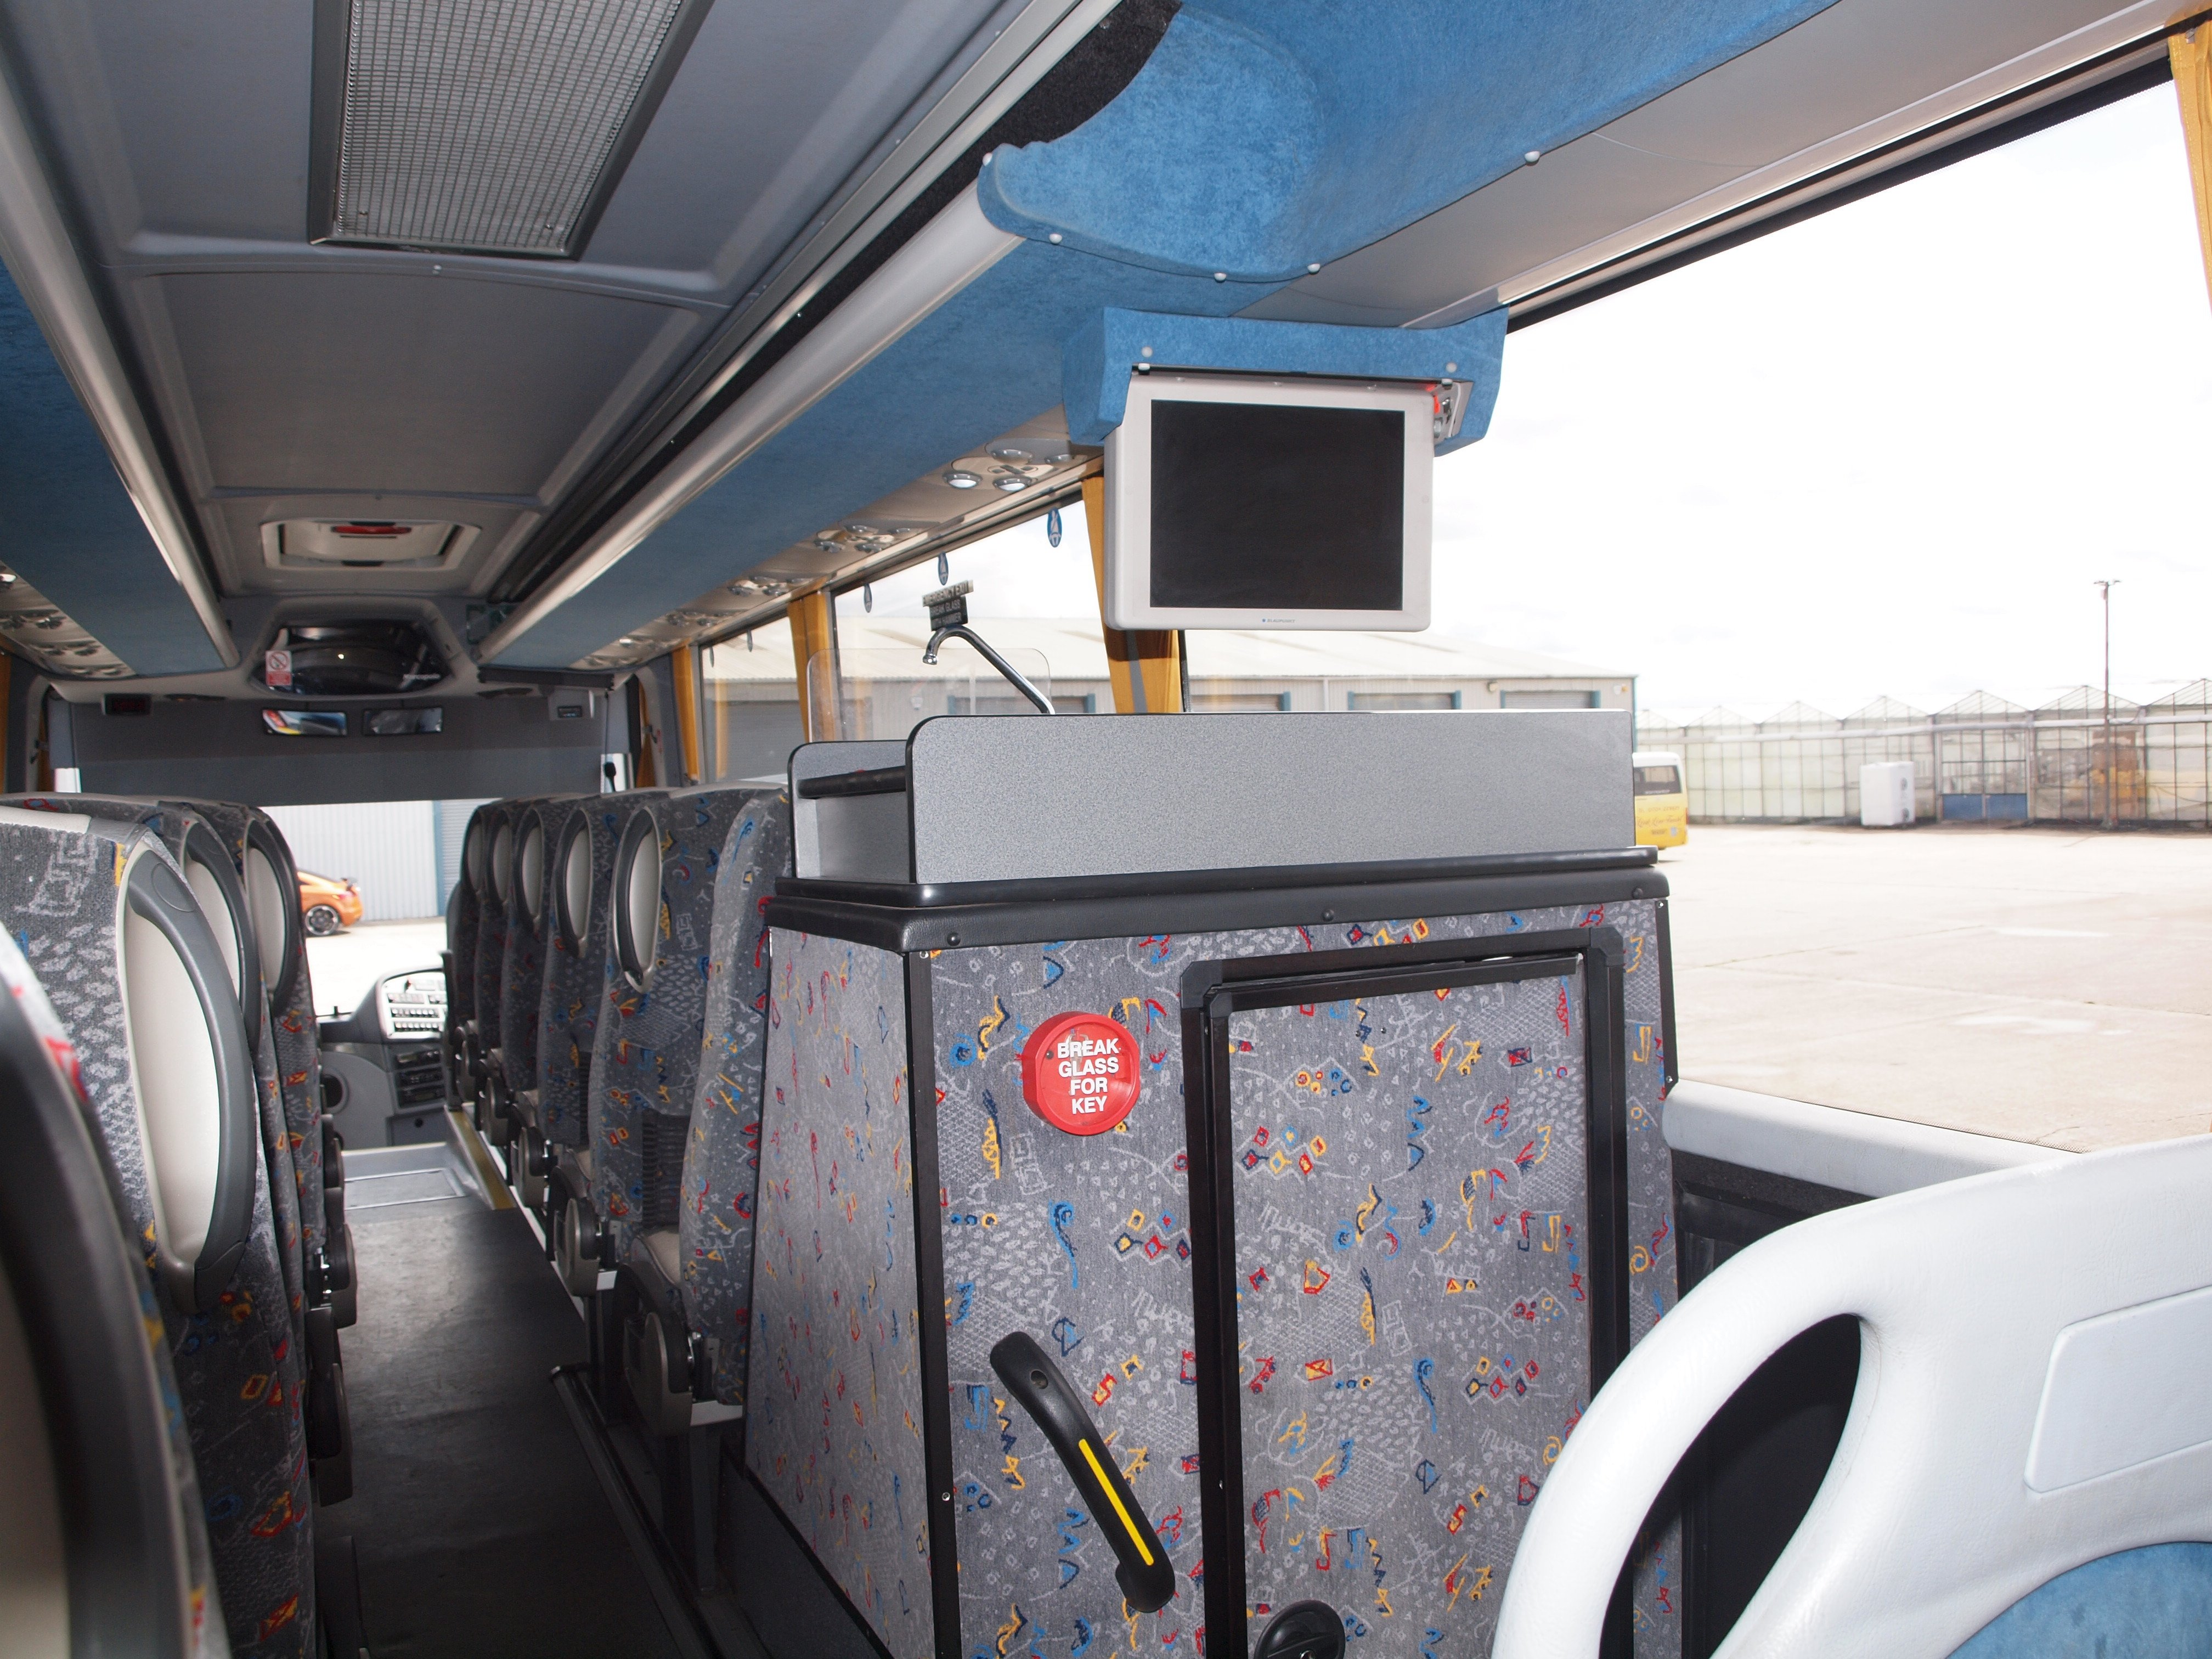 inside of the coach